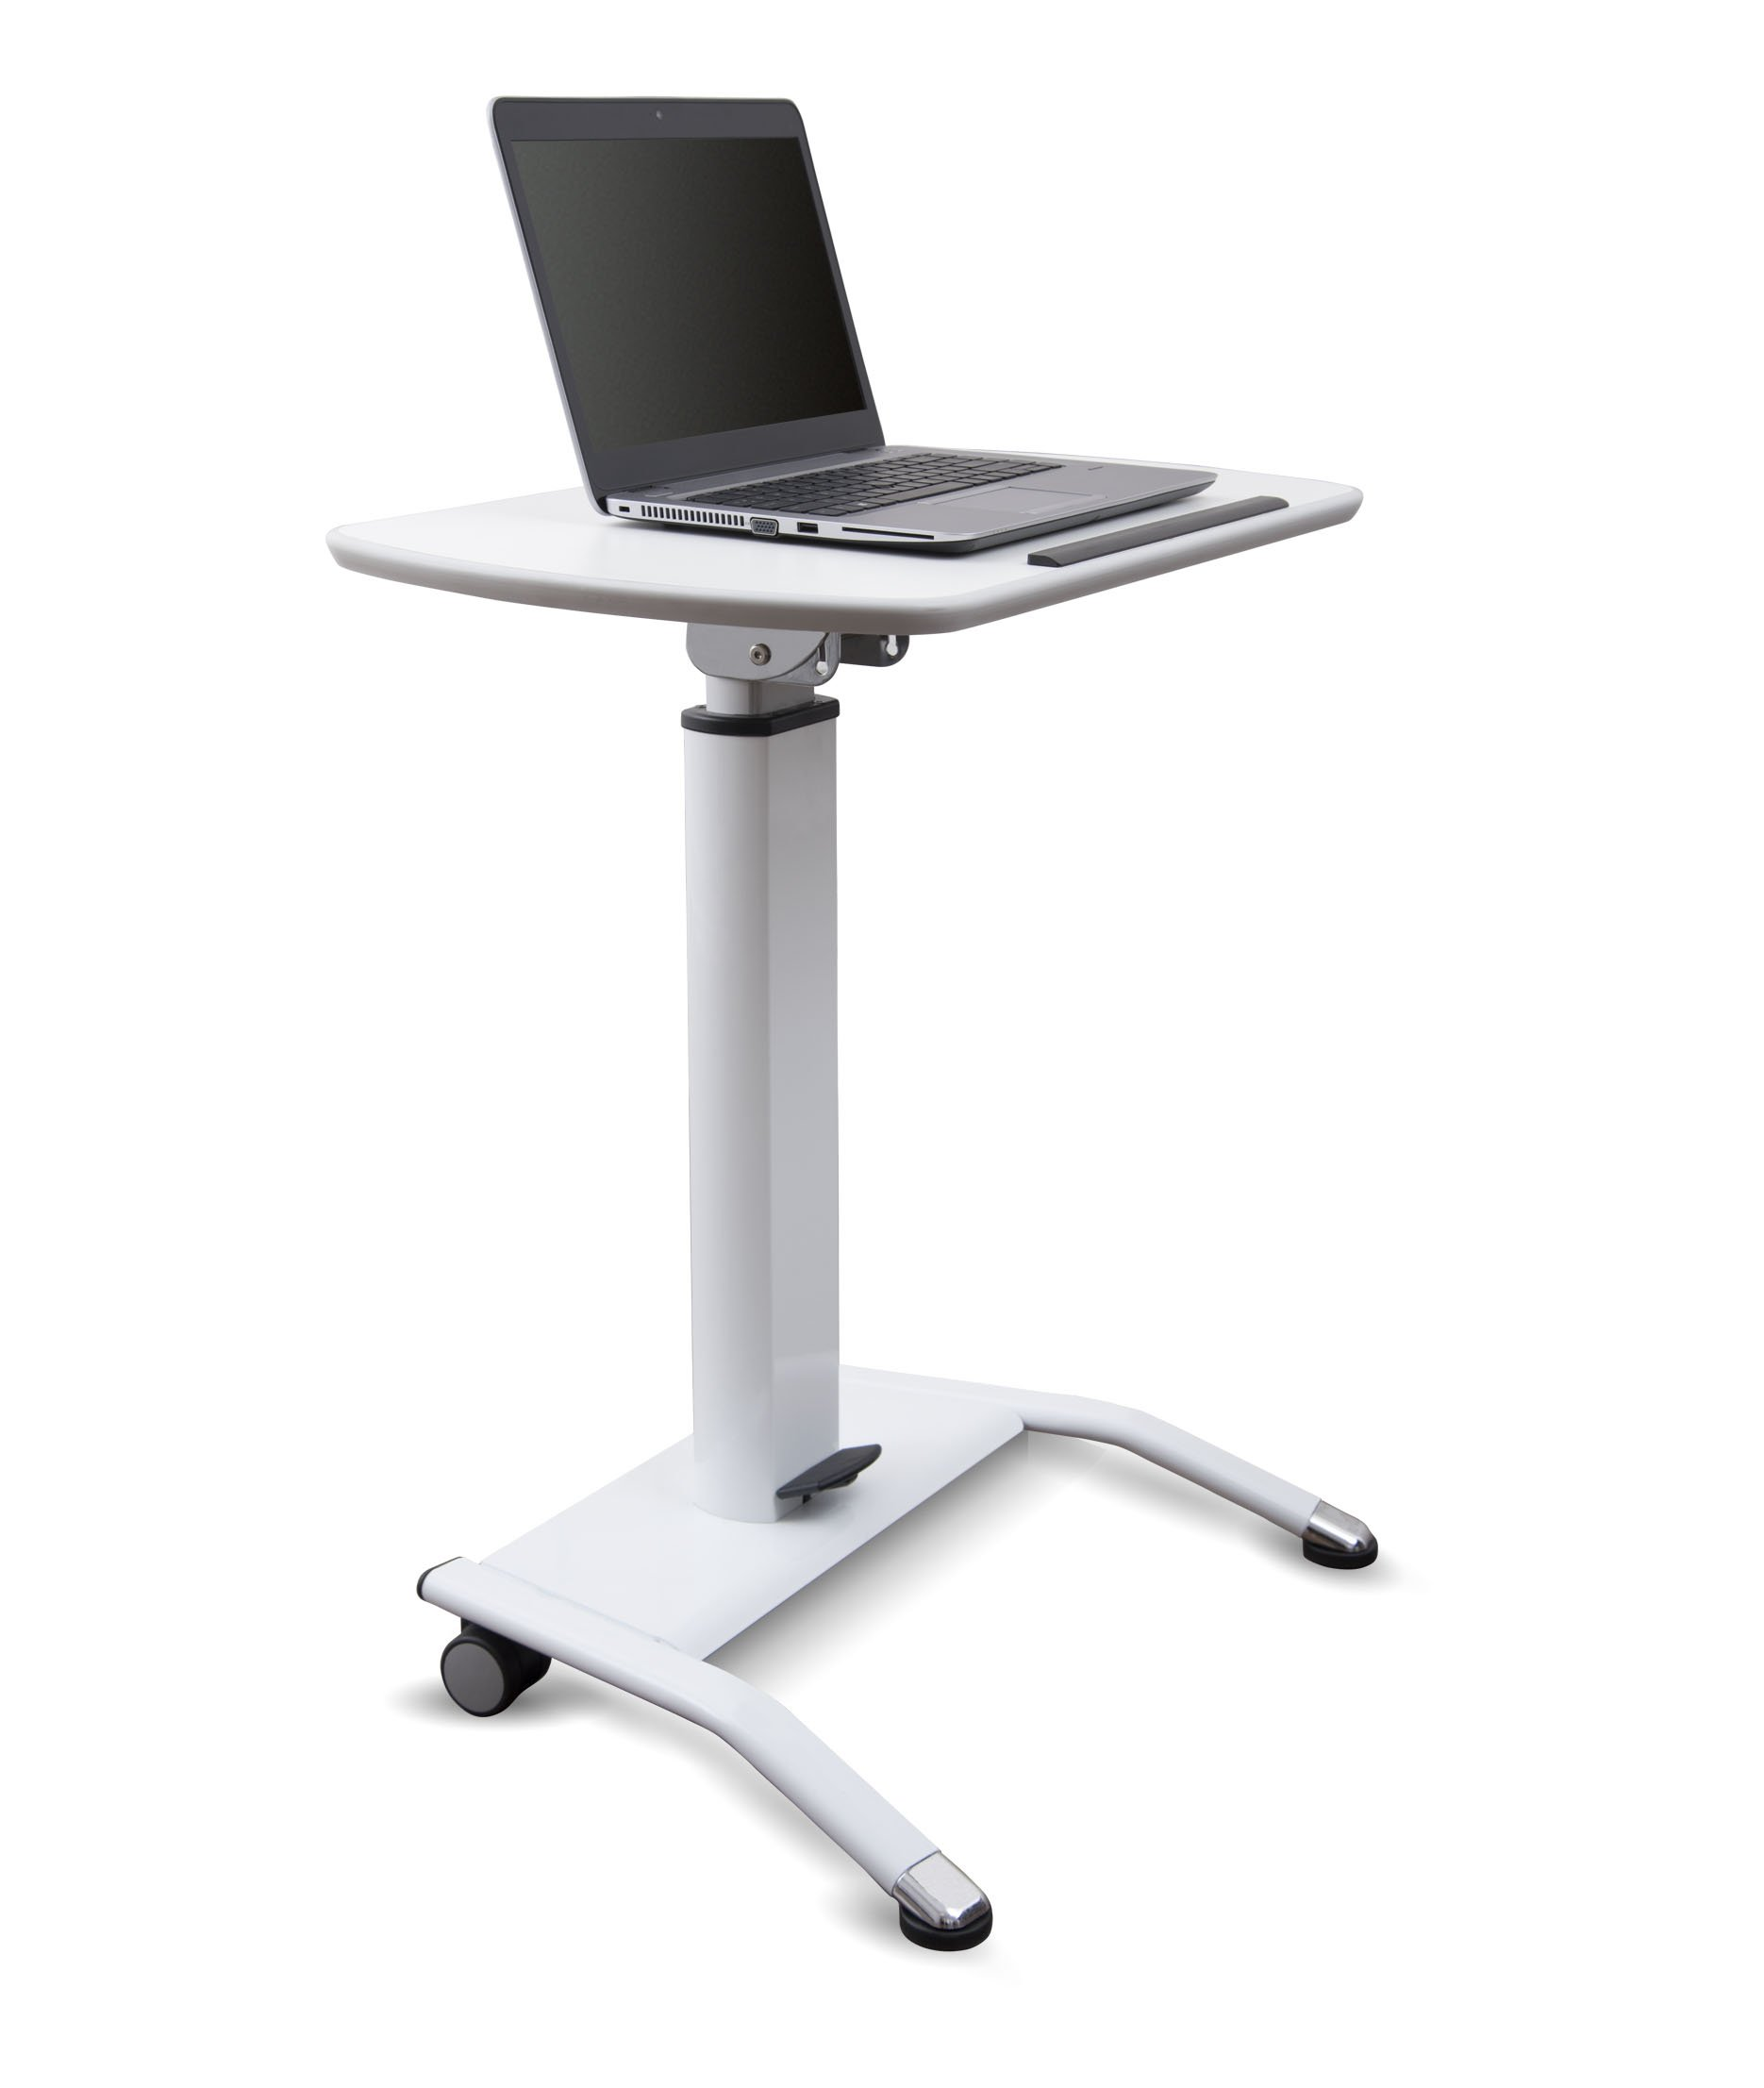 Pneumatic Adjustable-Height Lectern (White) by Stand Up Desk Store (Image #4)